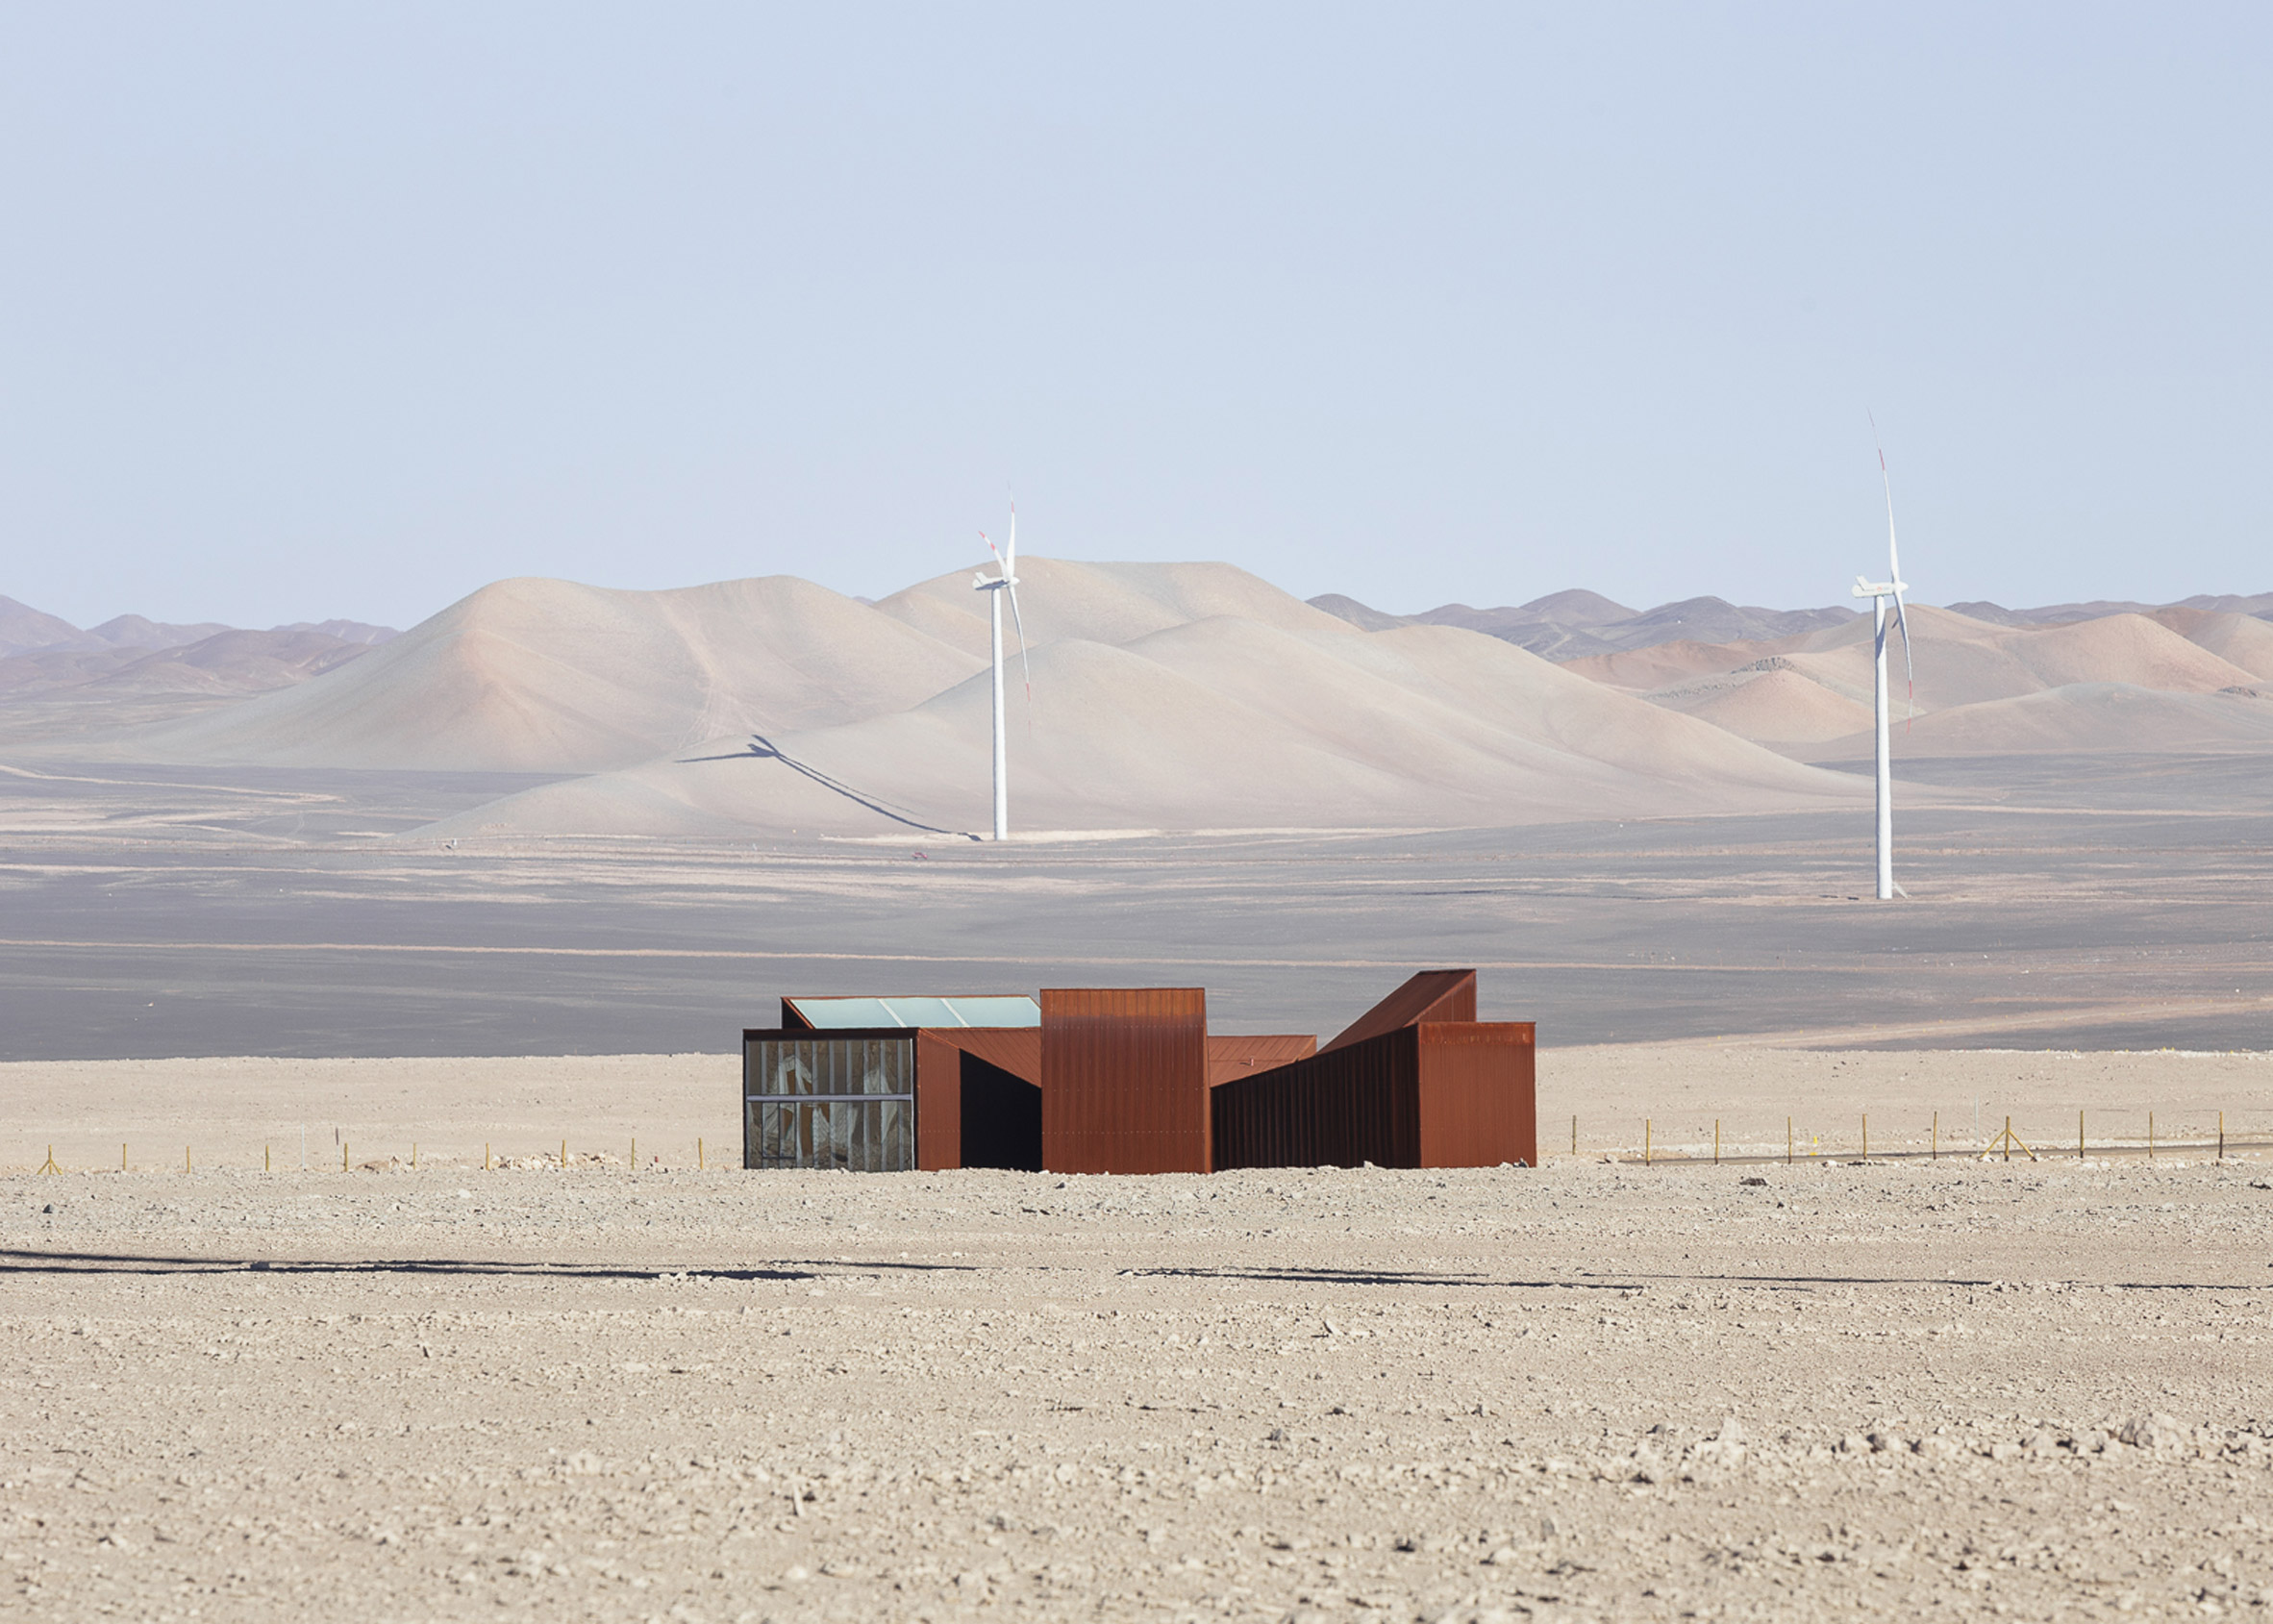 Rusty steel wedges surround desert garden in Chile's Atacama Desert